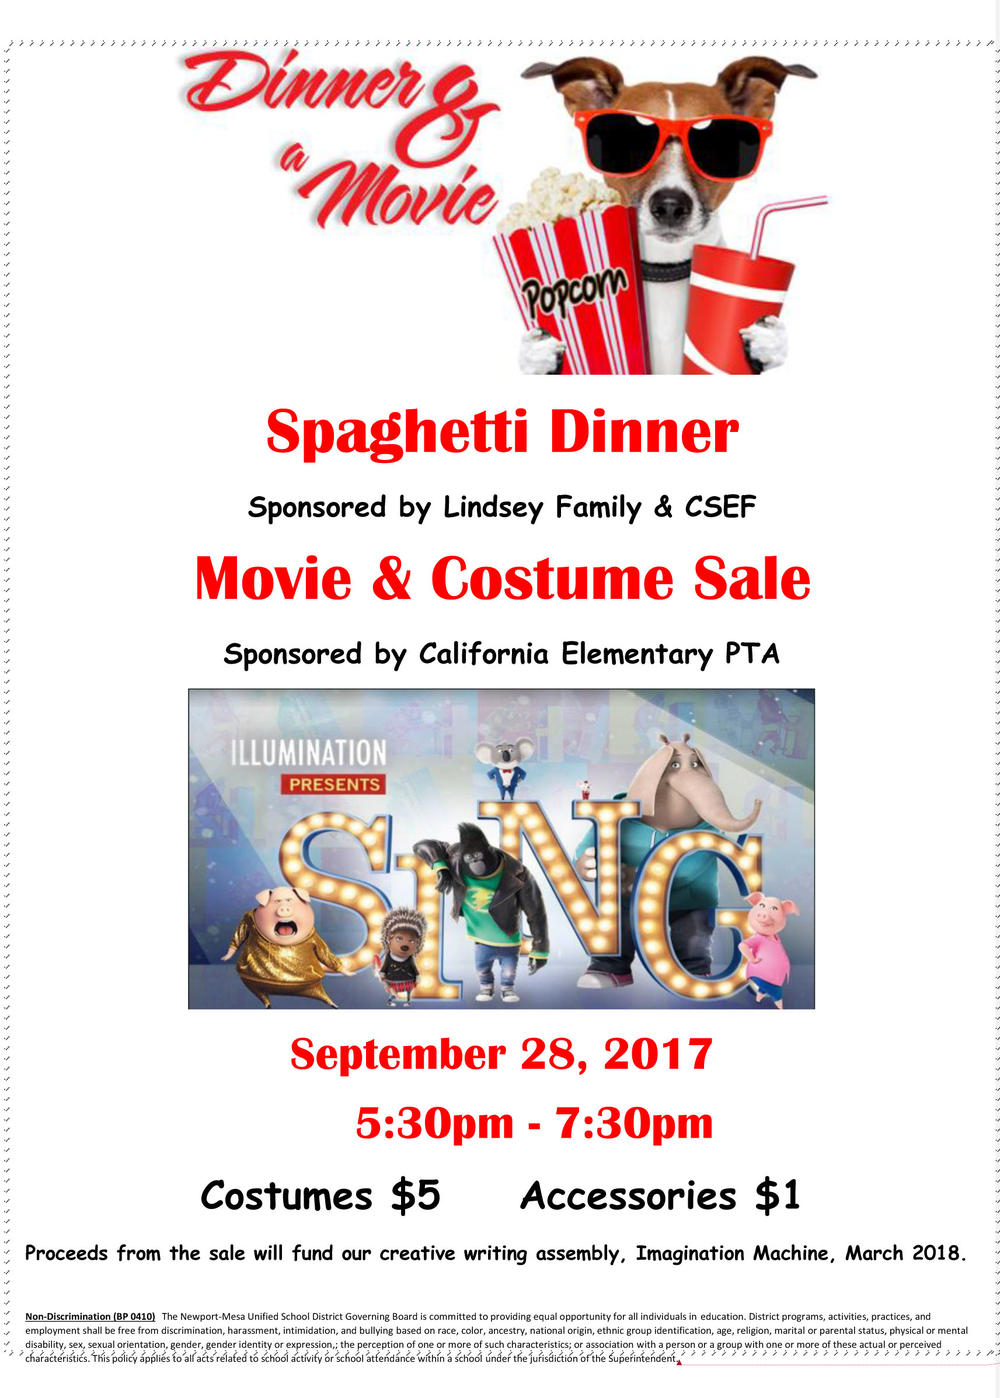 Dinner,Movie and Costume Sale Flyer